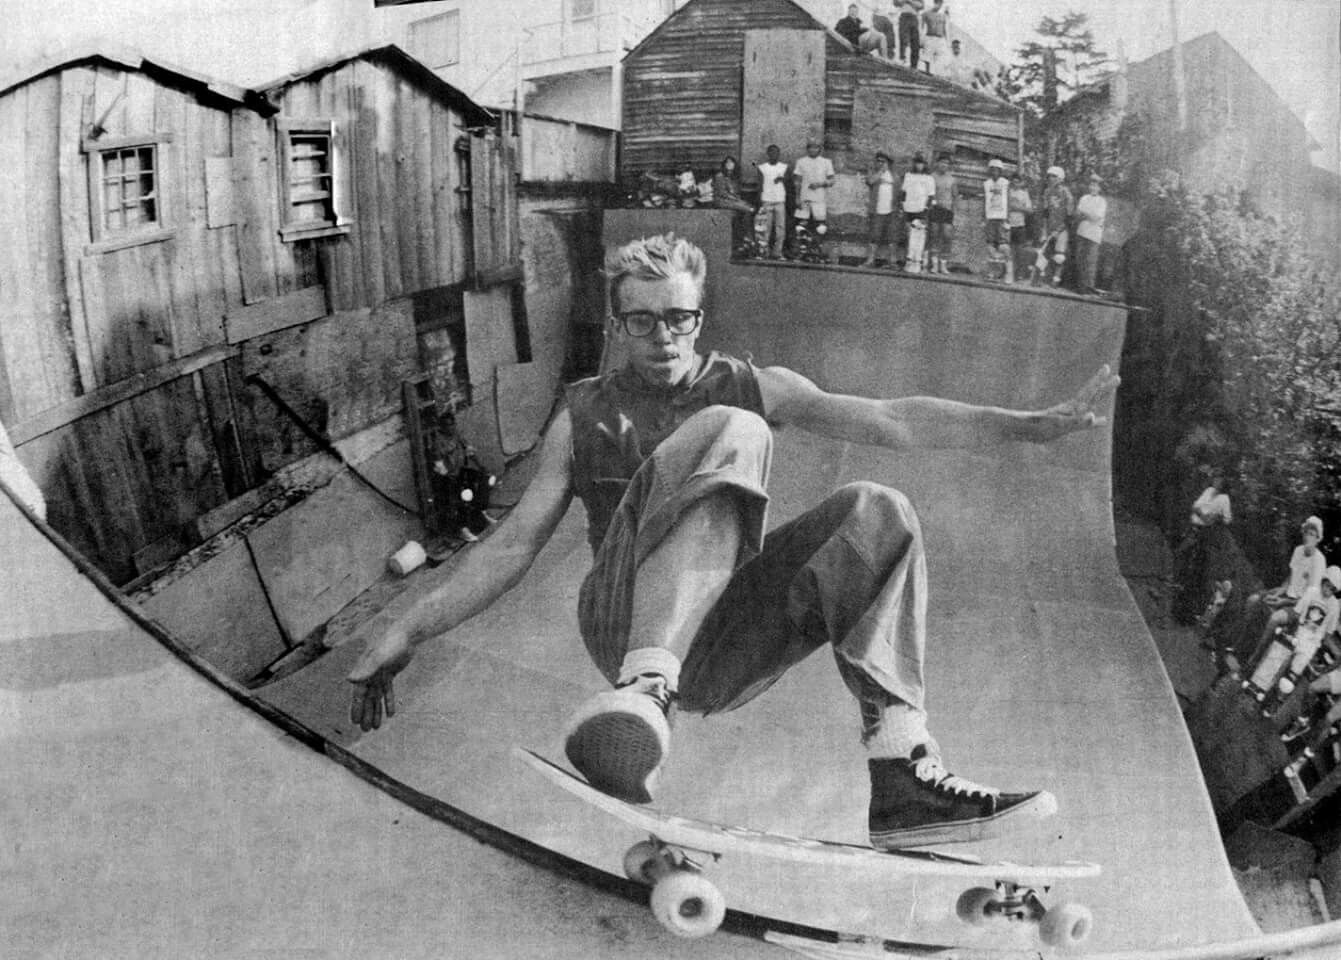 "Jake Phelps, skateboarding legend and editor of Thrasher has died. ... ""Jake Phelps was 100% skateboarder, but that label sells him way too short, because beyond his enormous influence in our world, he was truly an individual beyond this world,"" Vitello wrote. Phelps cause of death is yet to be confirmed."